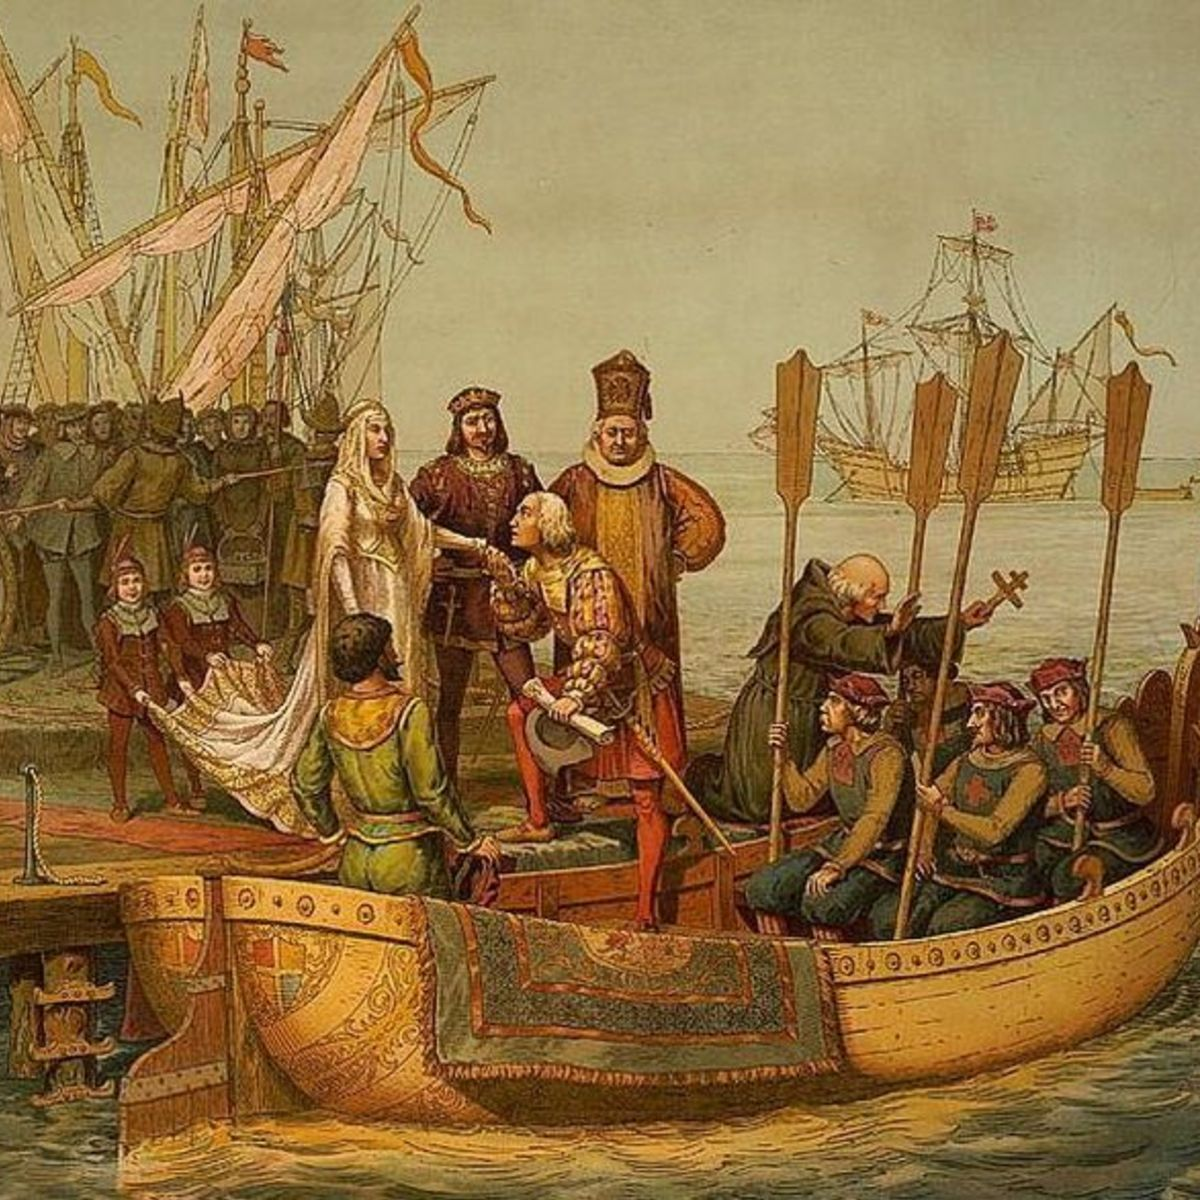 christopher columbus a hero essay Find out more about the history of columbus  christopher columbus sailed the  controversy has arisen over the validity of honoring the explorer as a hero.